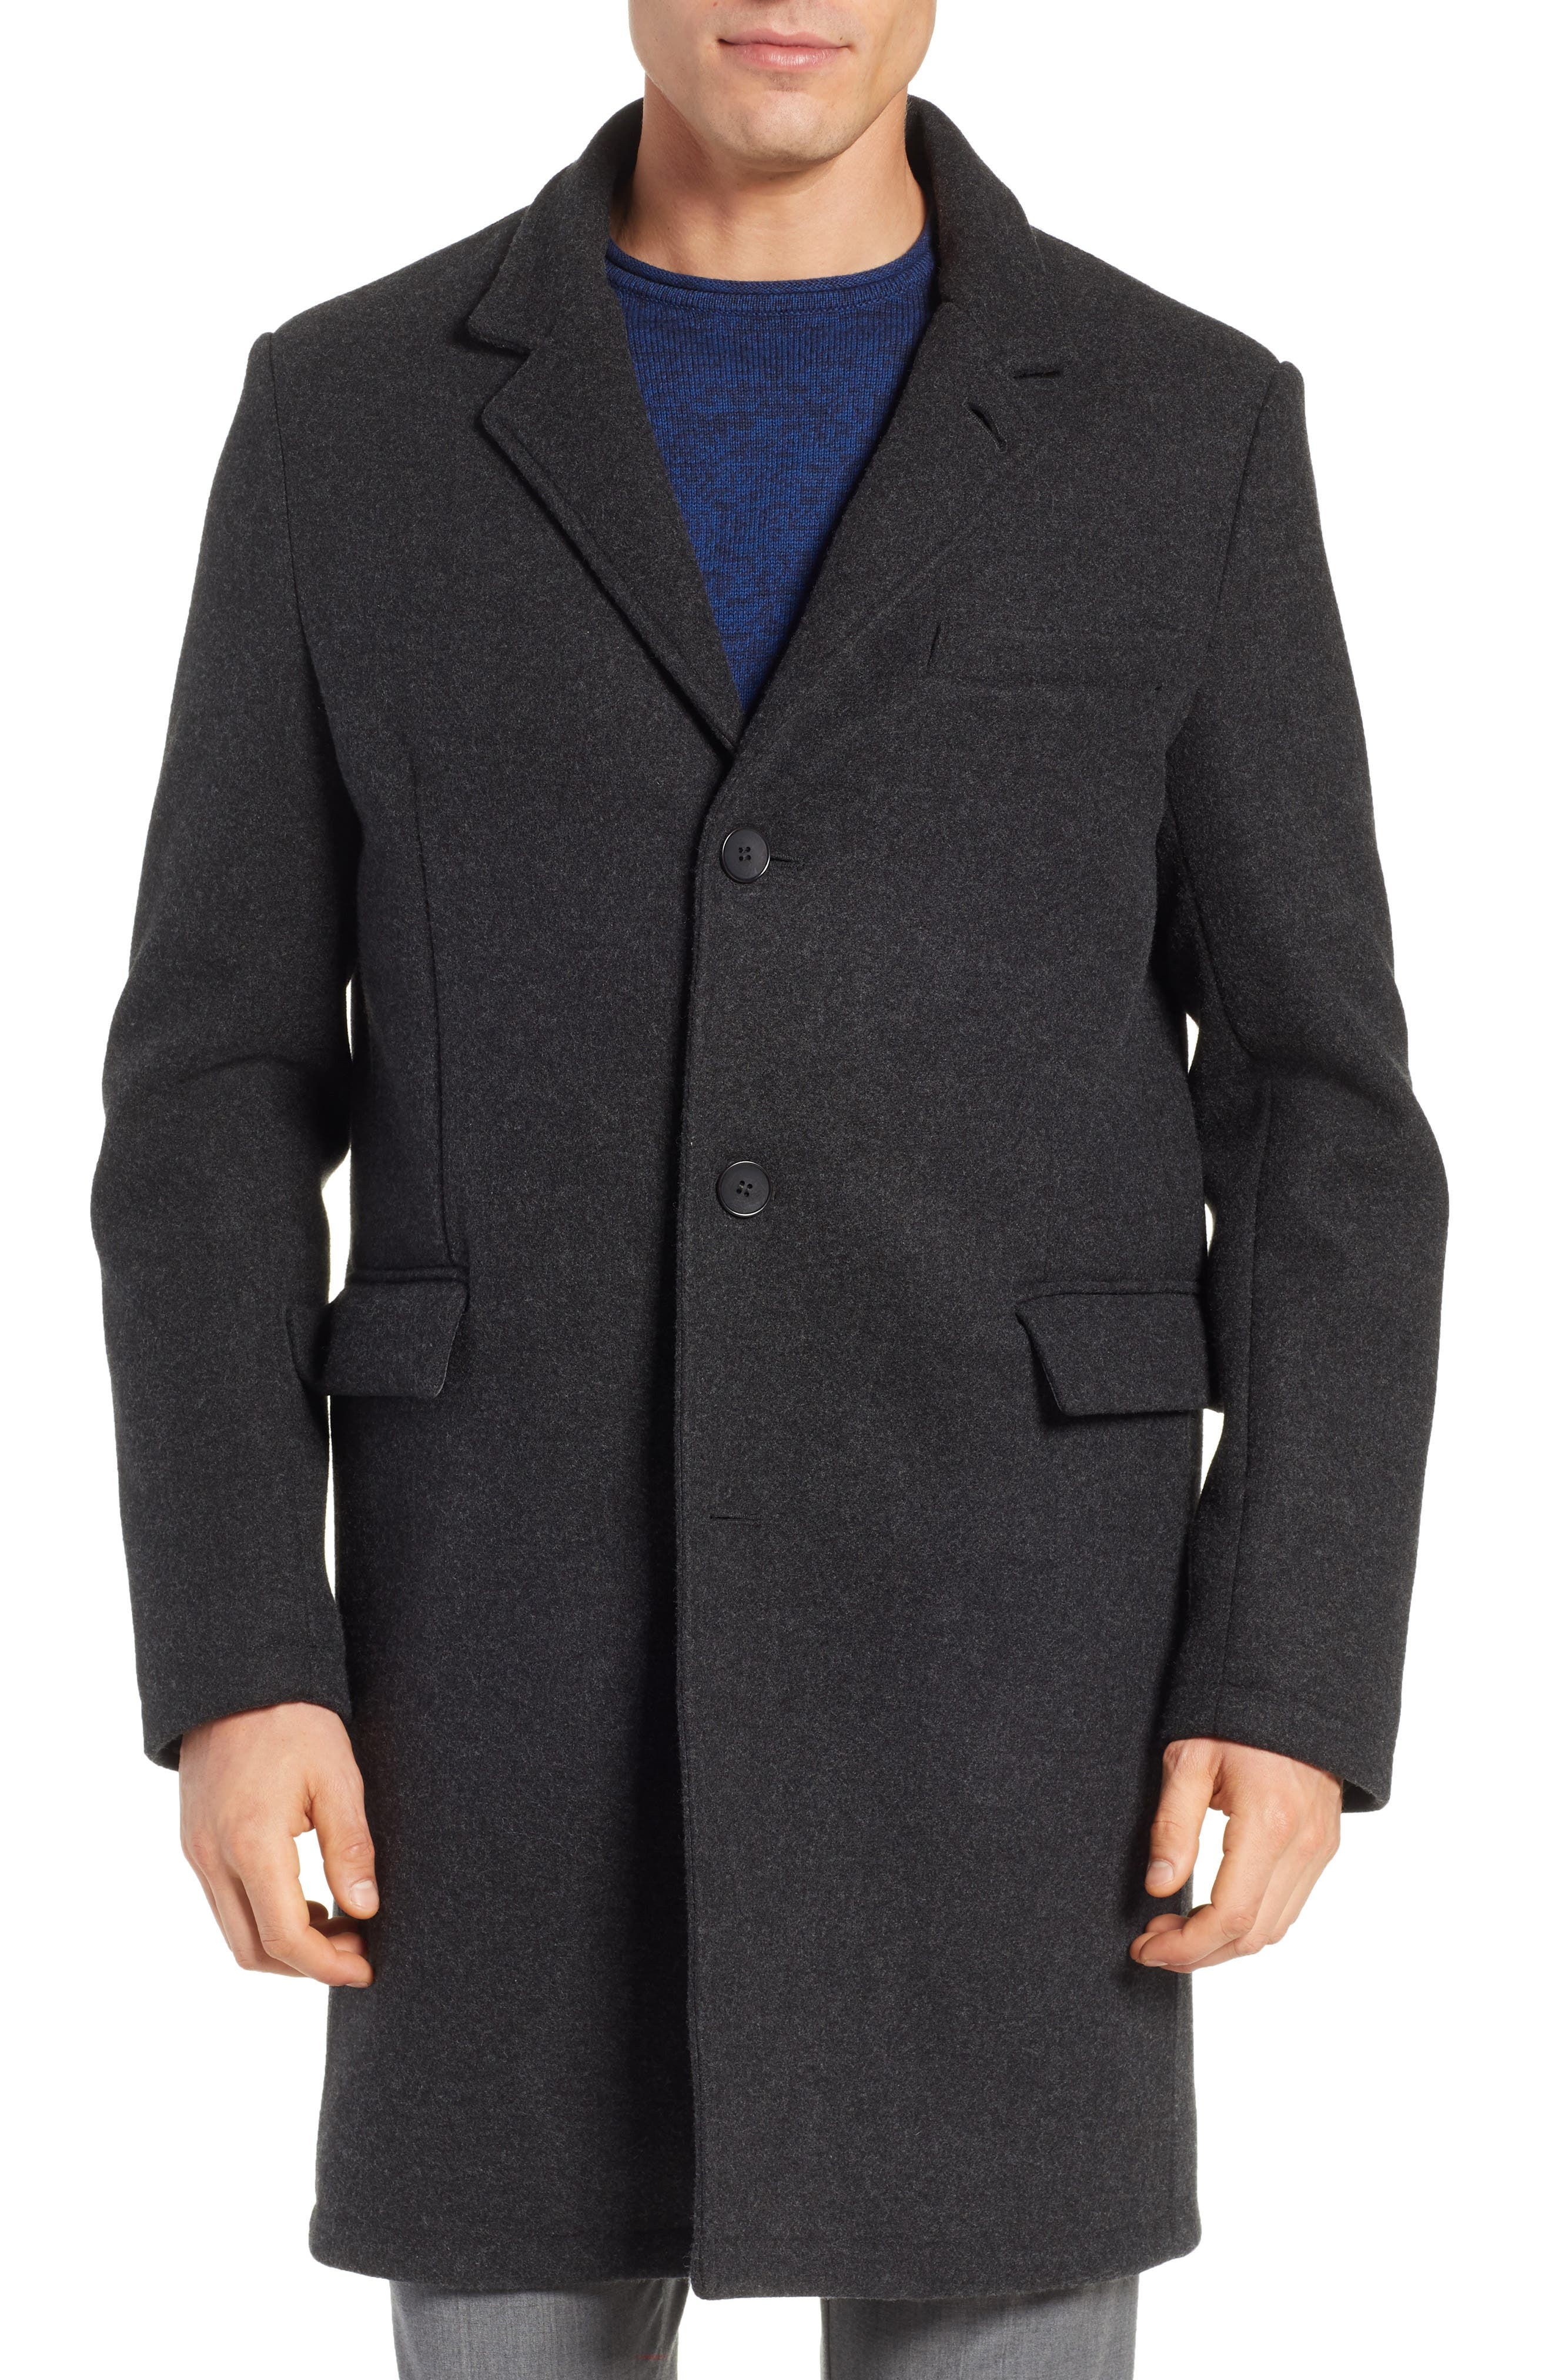 Westcott Wool Car Coat,                             Alternate thumbnail 4, color,                             001